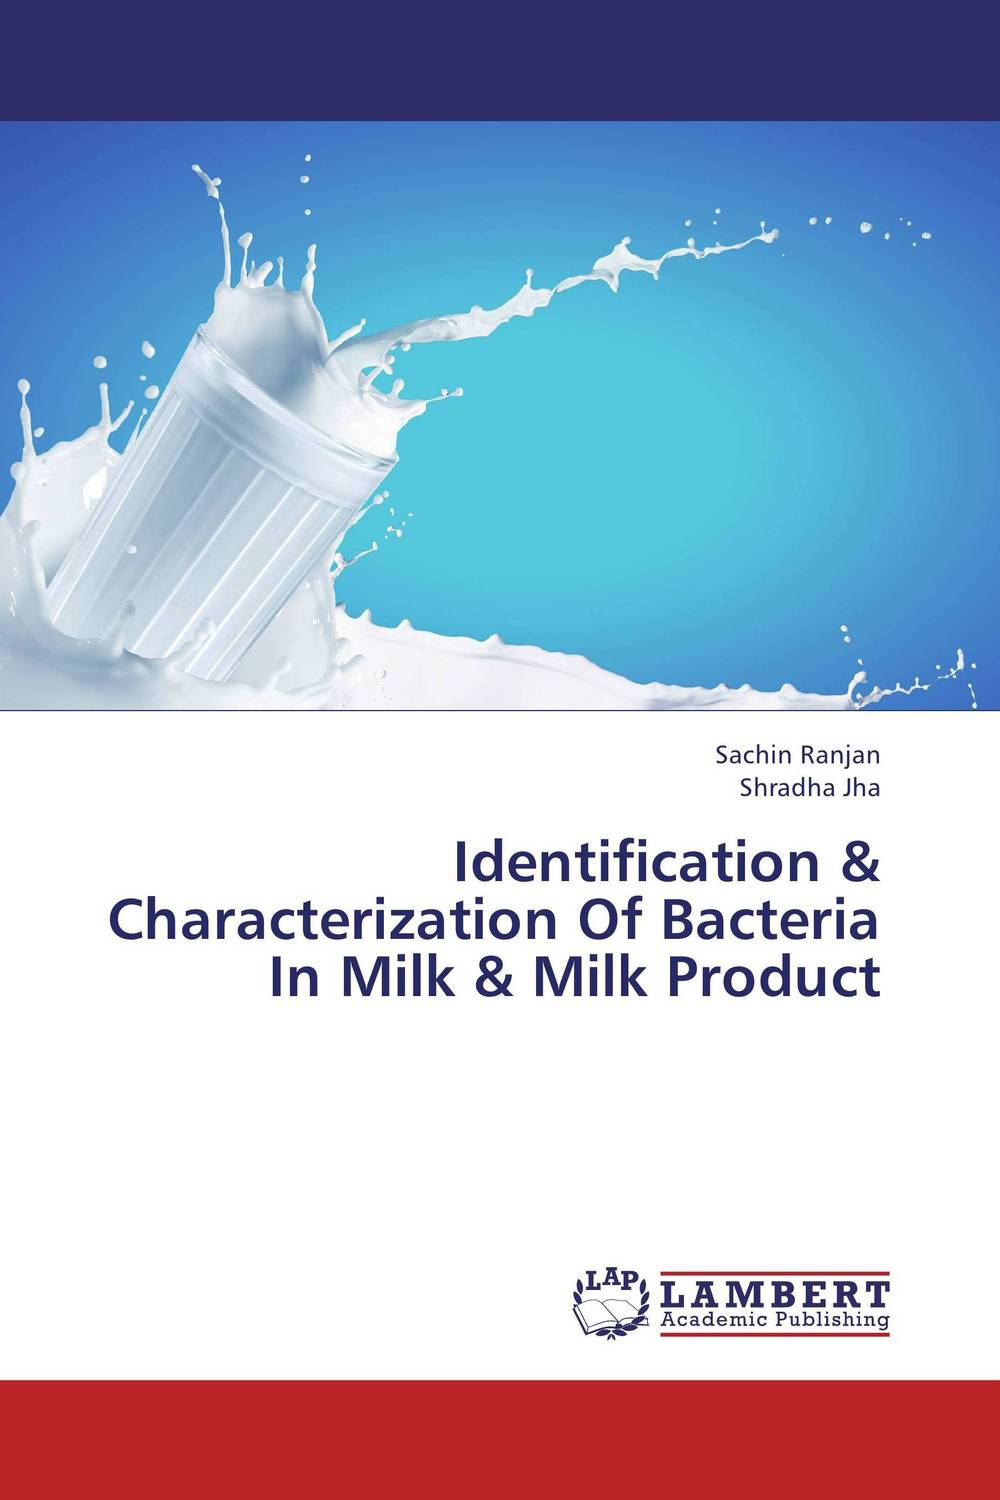 Identification & Characterization Of Bacteria In Milk & Milk Product